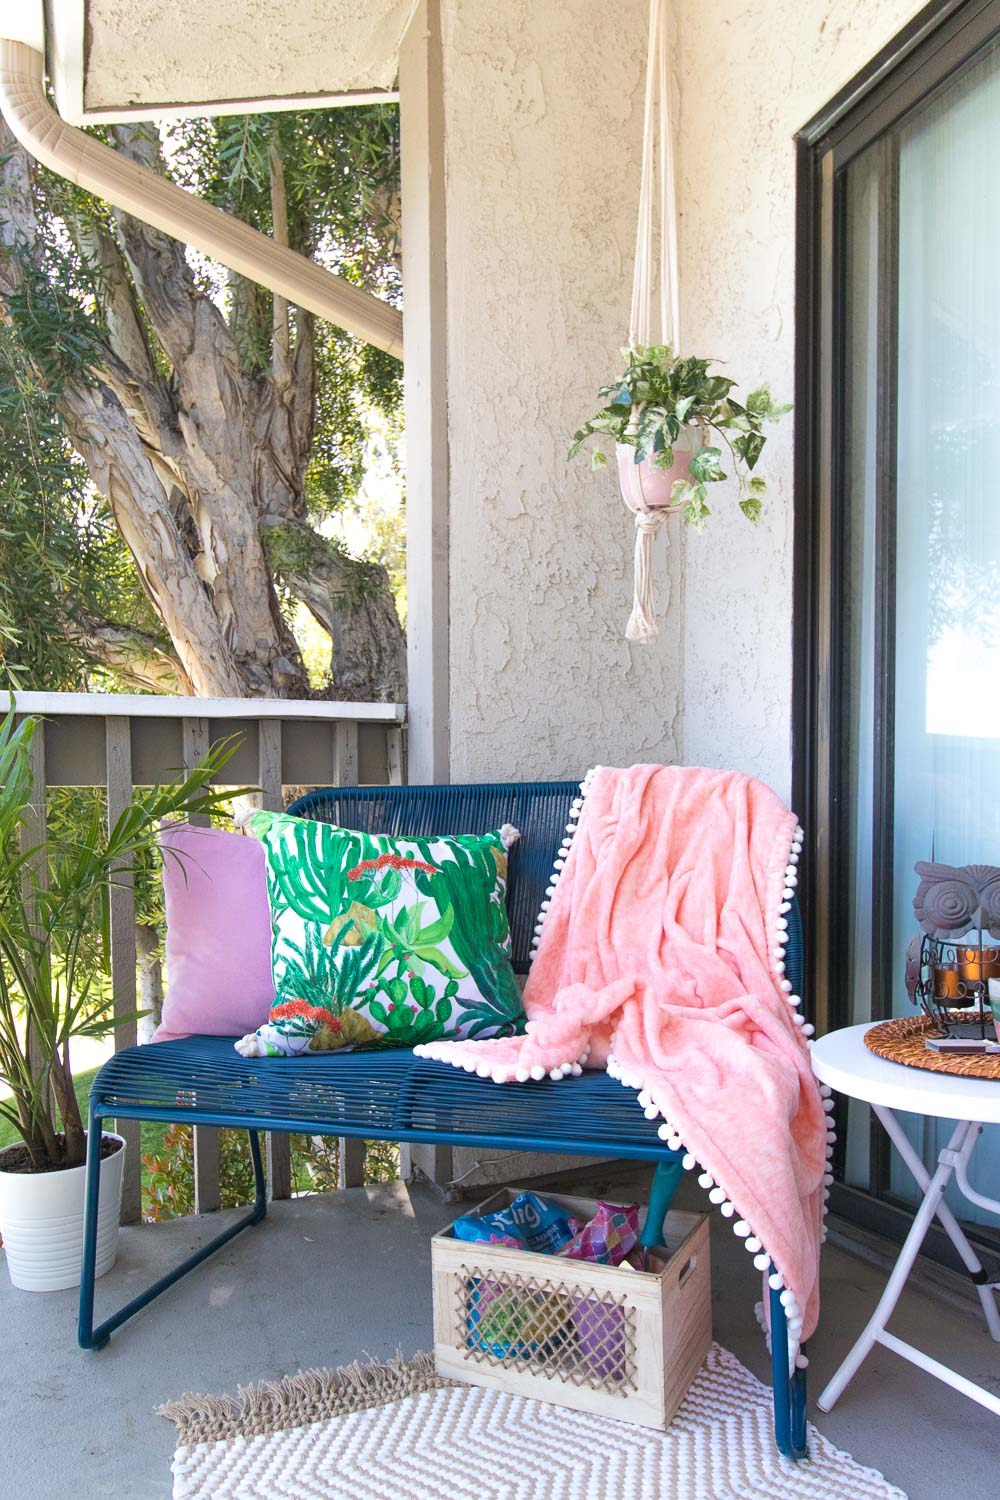 Apartment Living: Outdoor Entertaining in Small Spaces | Club Crafted